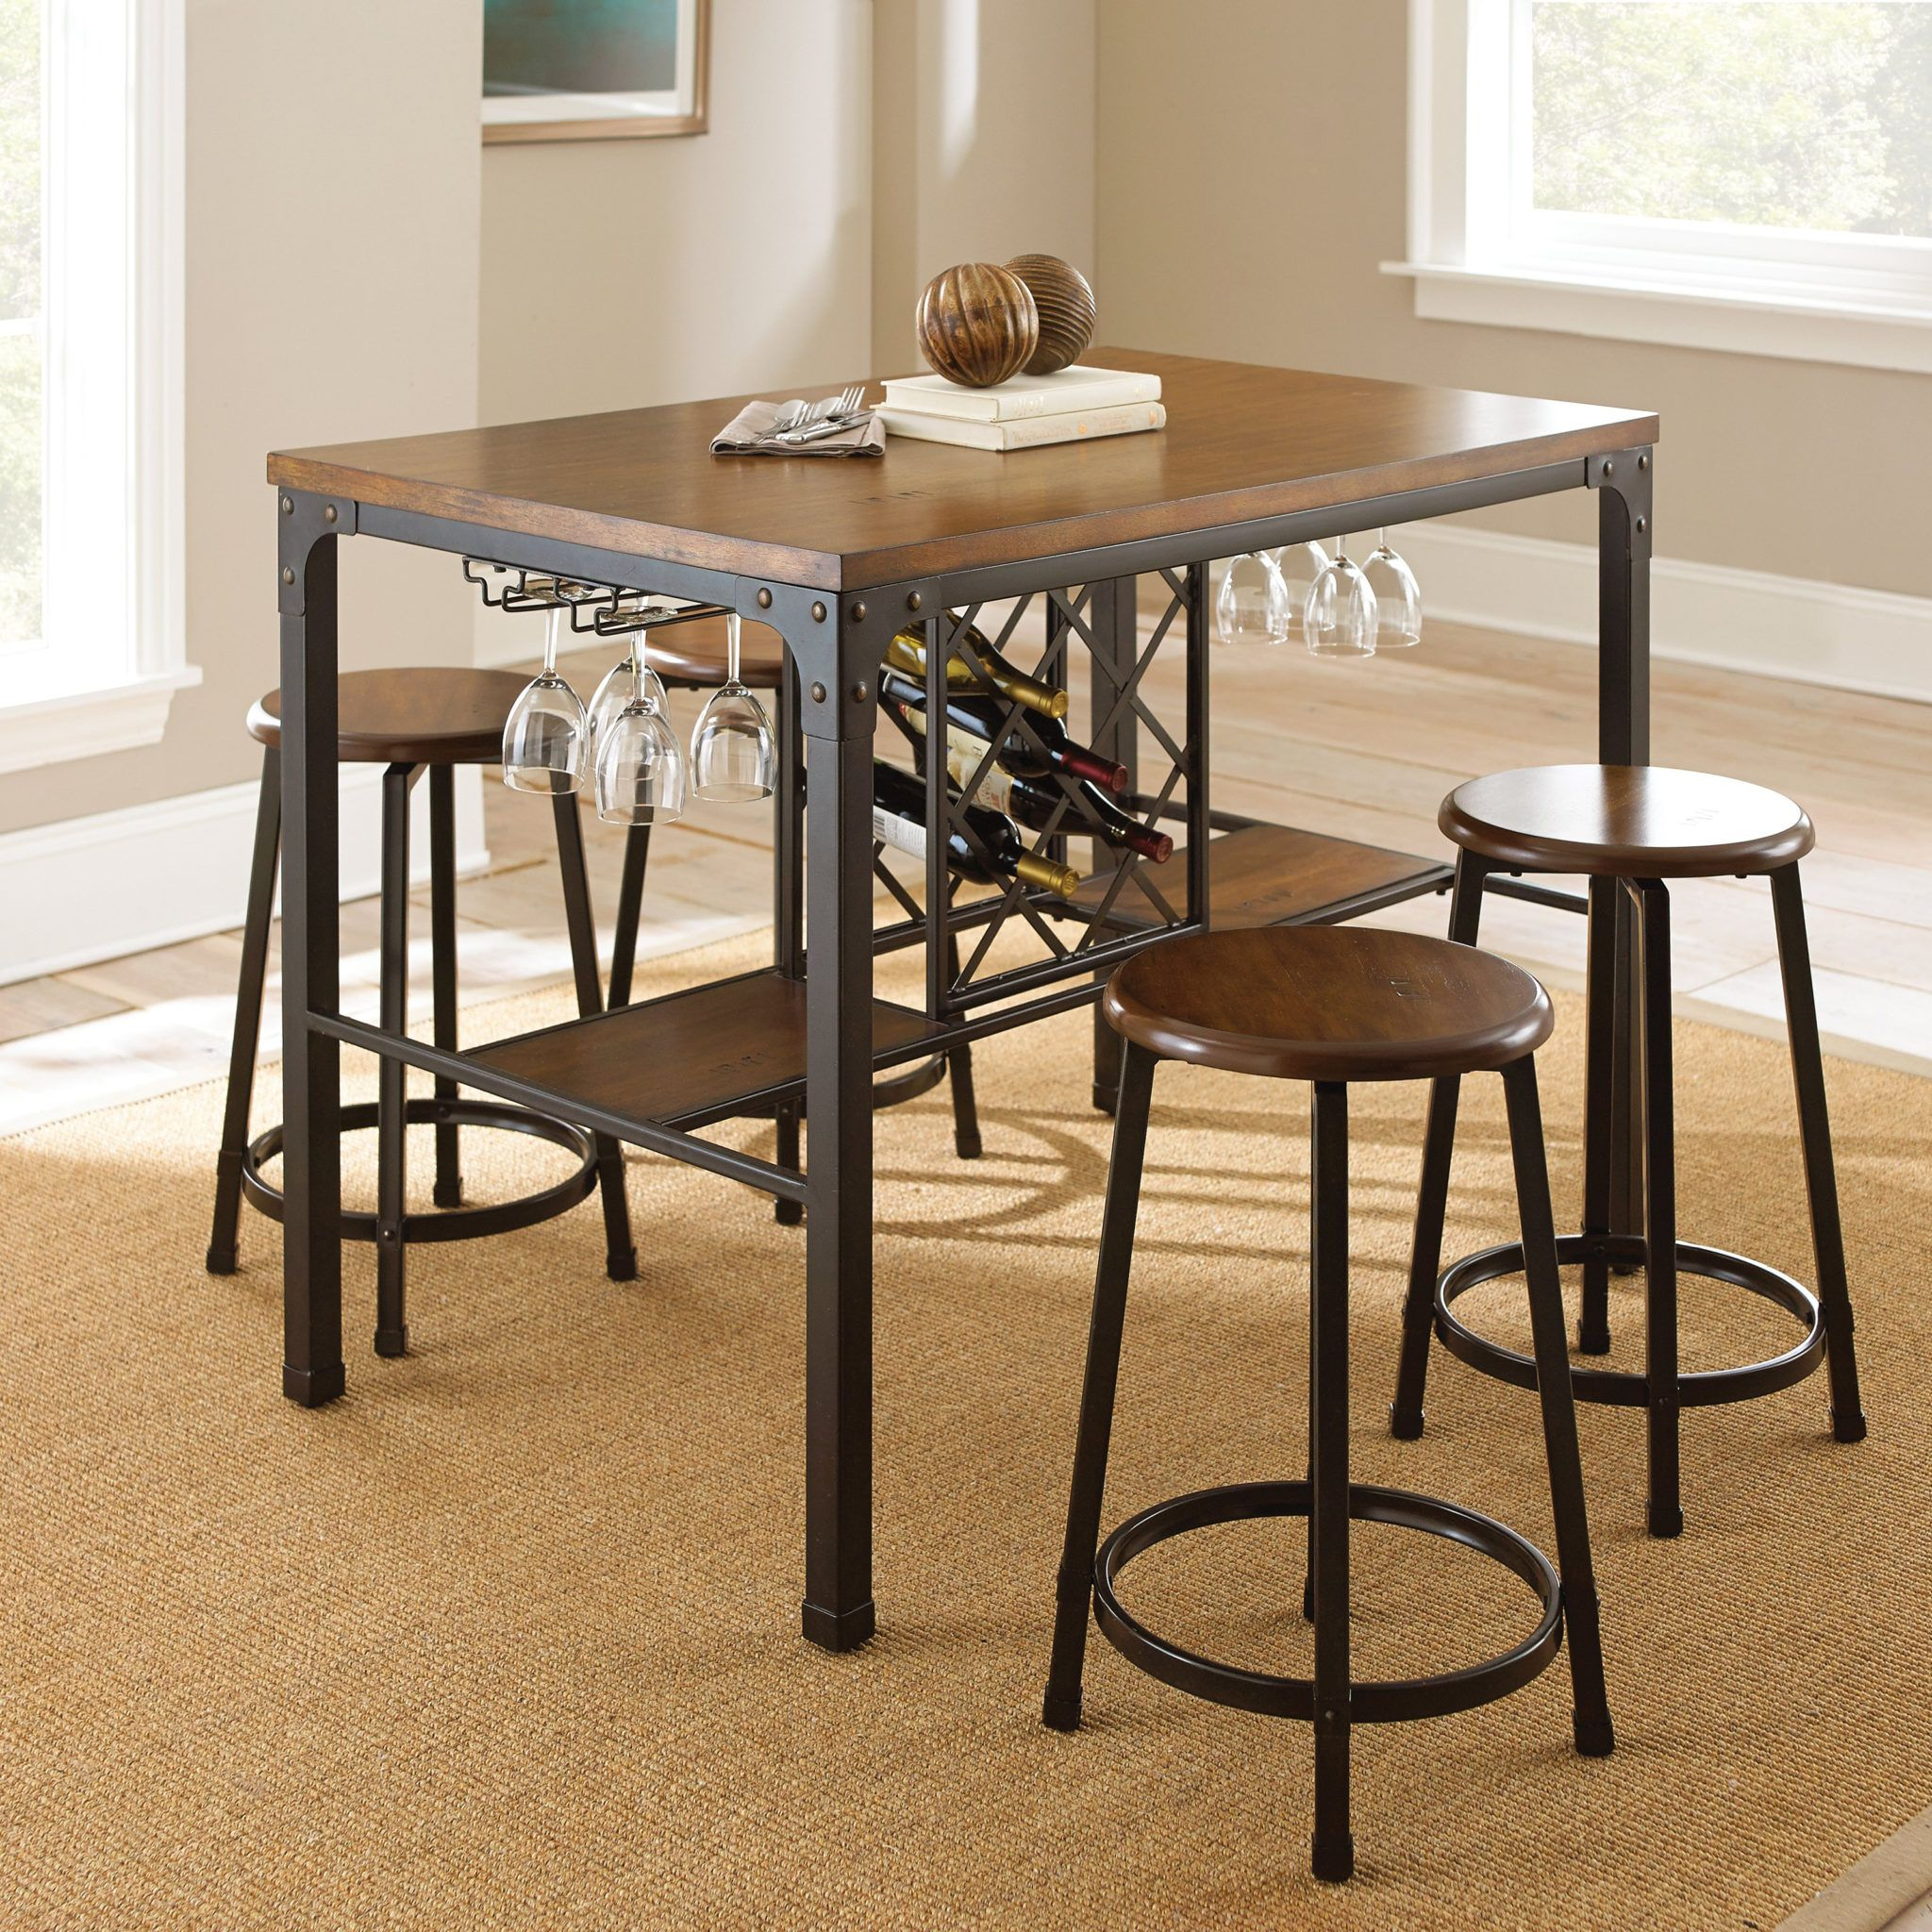 Creative Kitchen Table With Wine Rack Underneath Counter Height